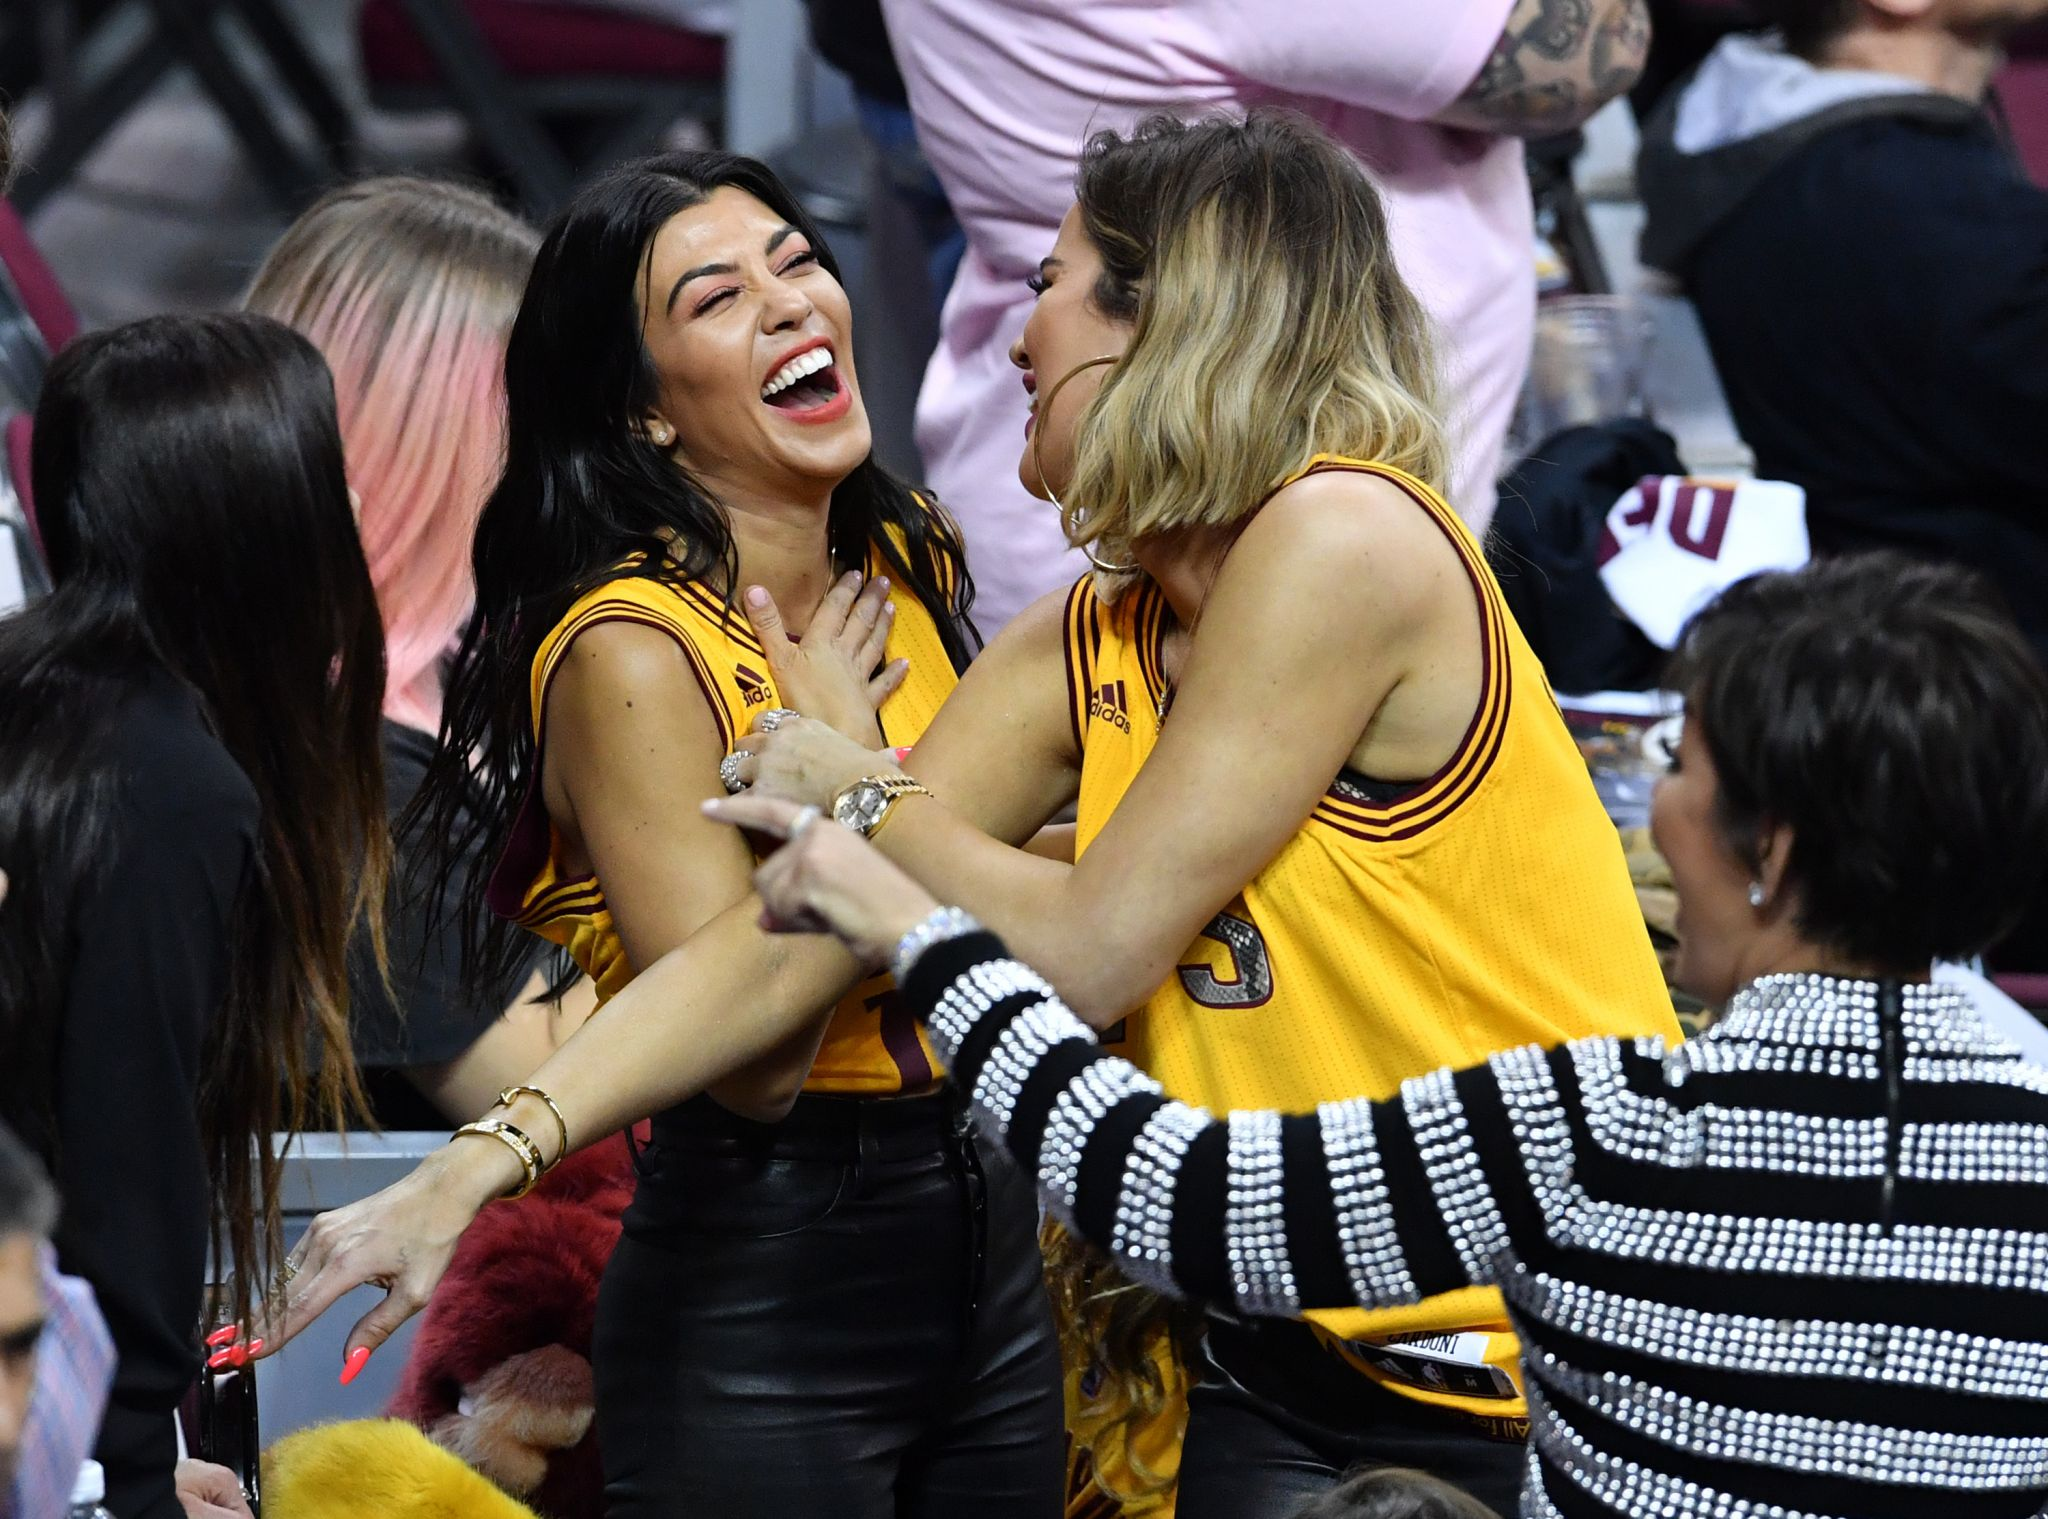 Kardashians Cause A Stir At Game 4 Of Nba Finals Jeff Van